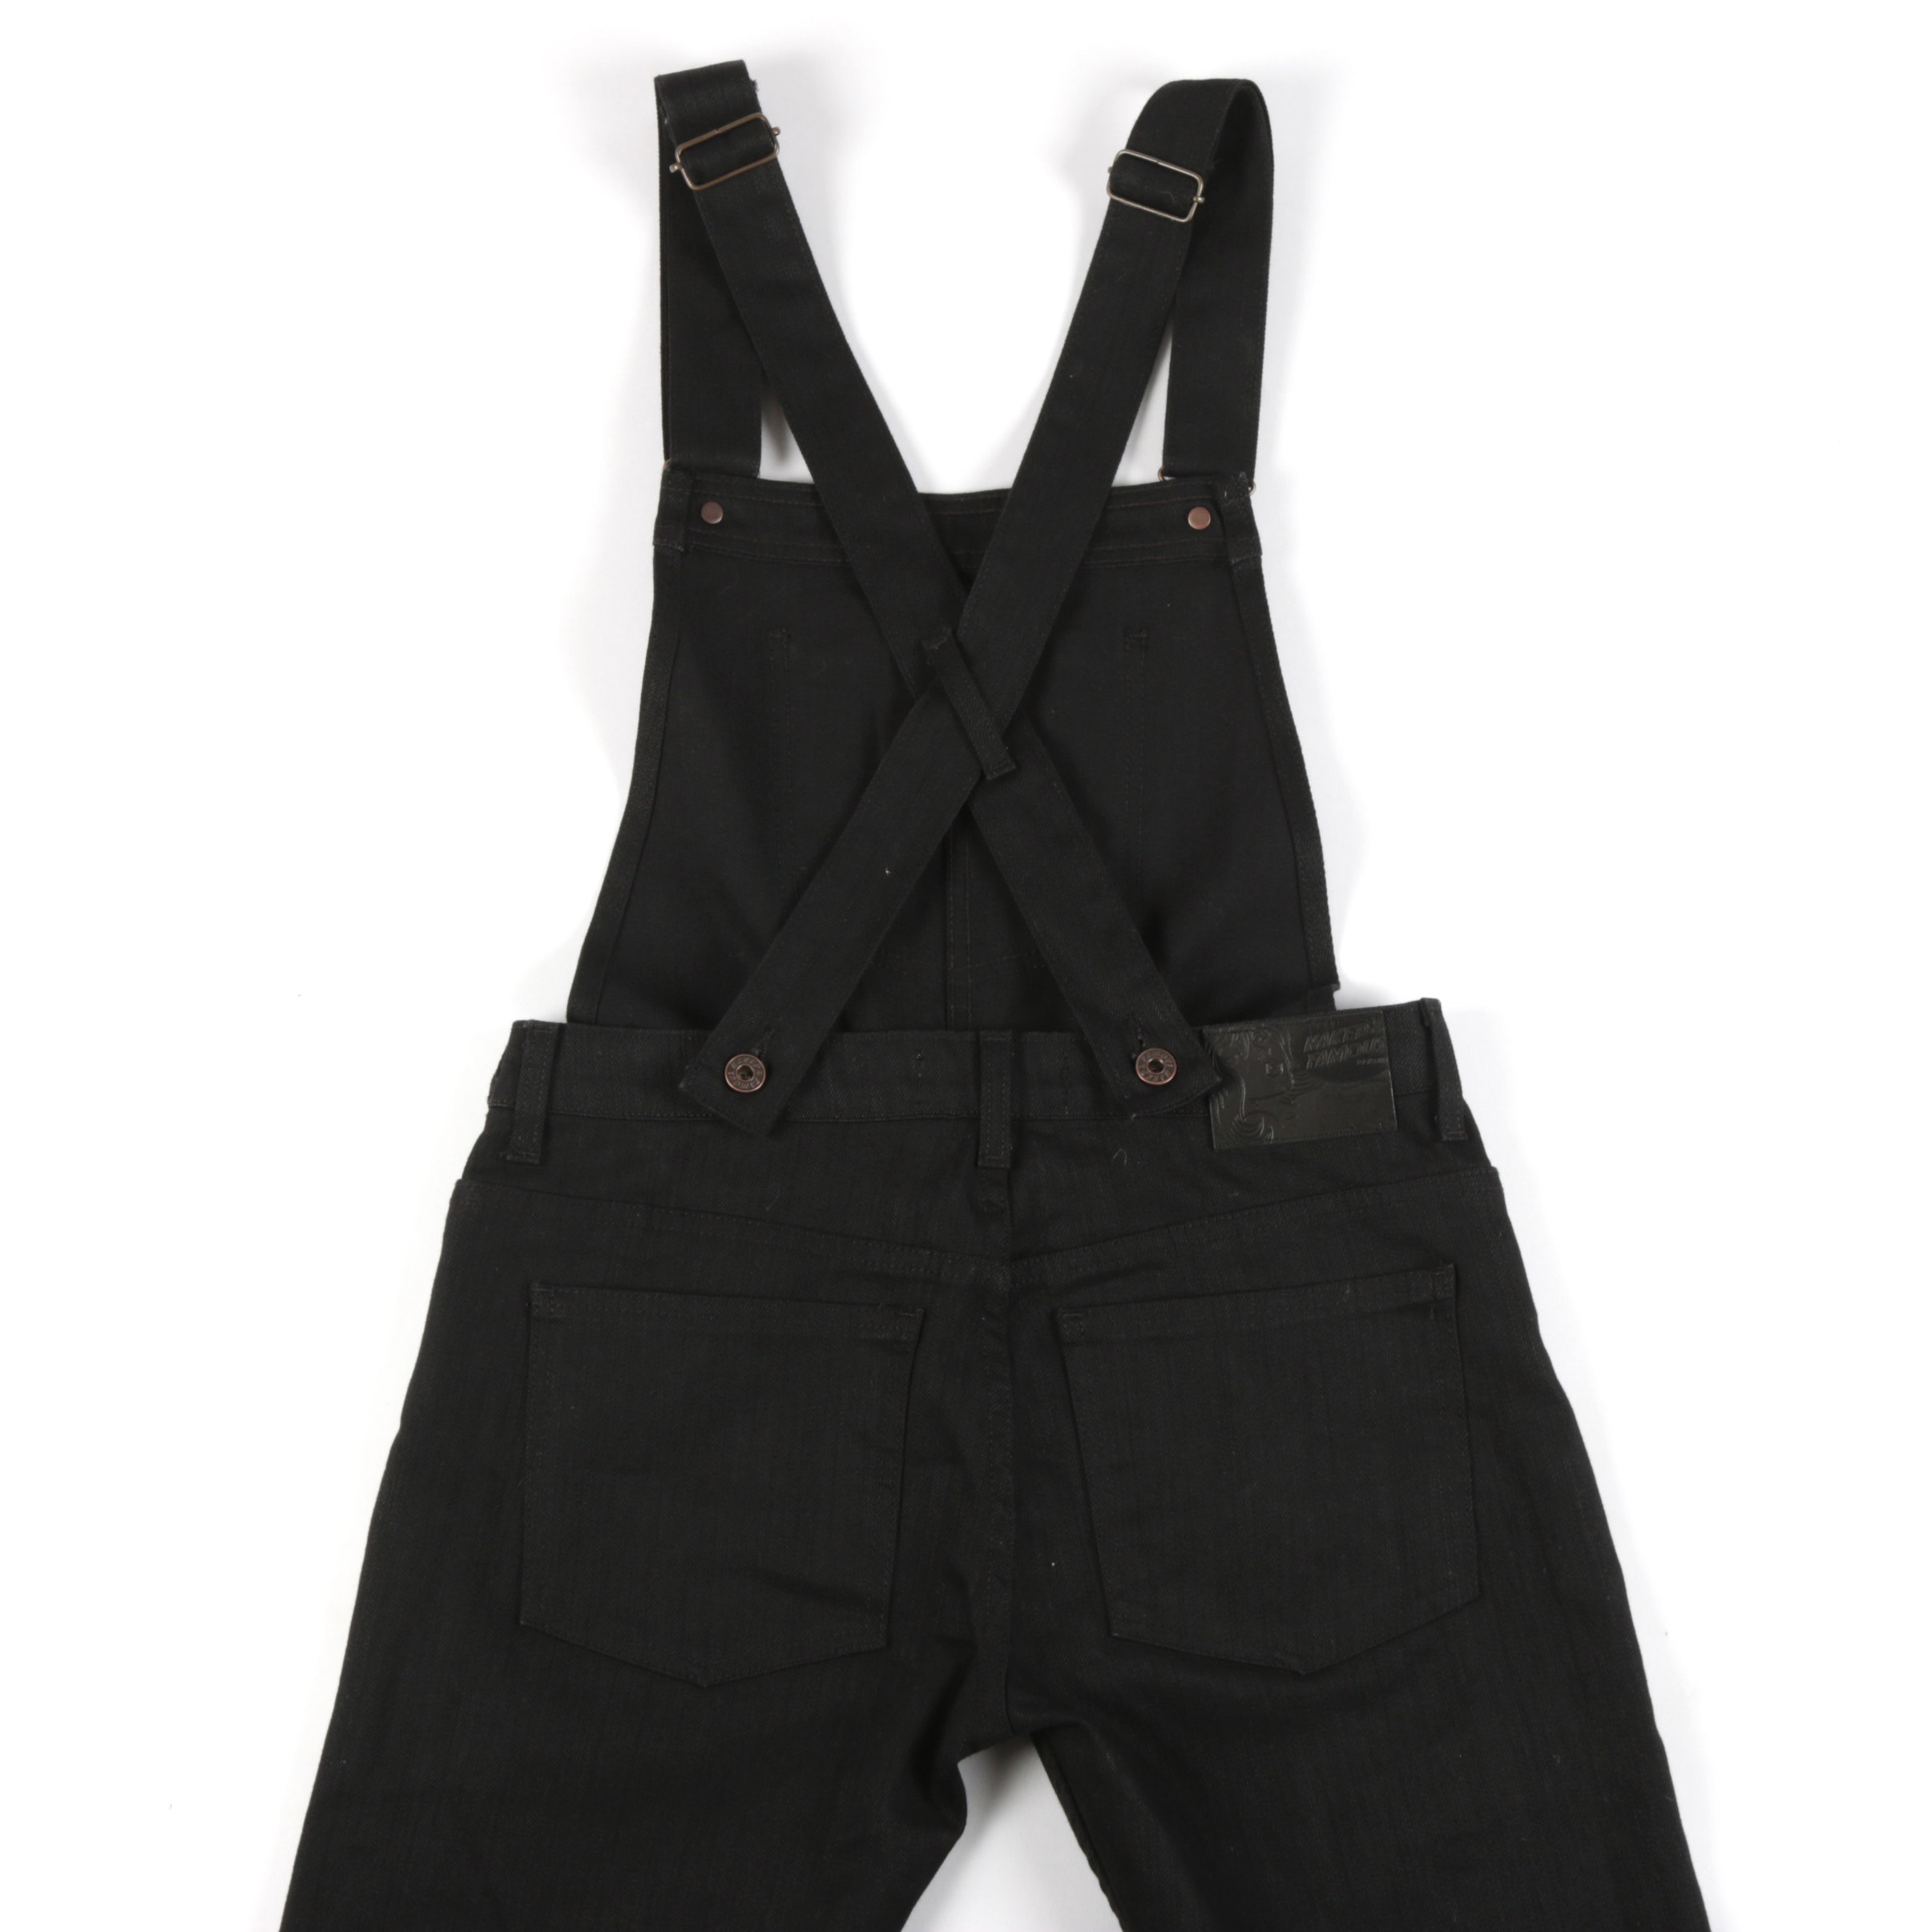 Women's Overalls Black Power-Stretch Back View